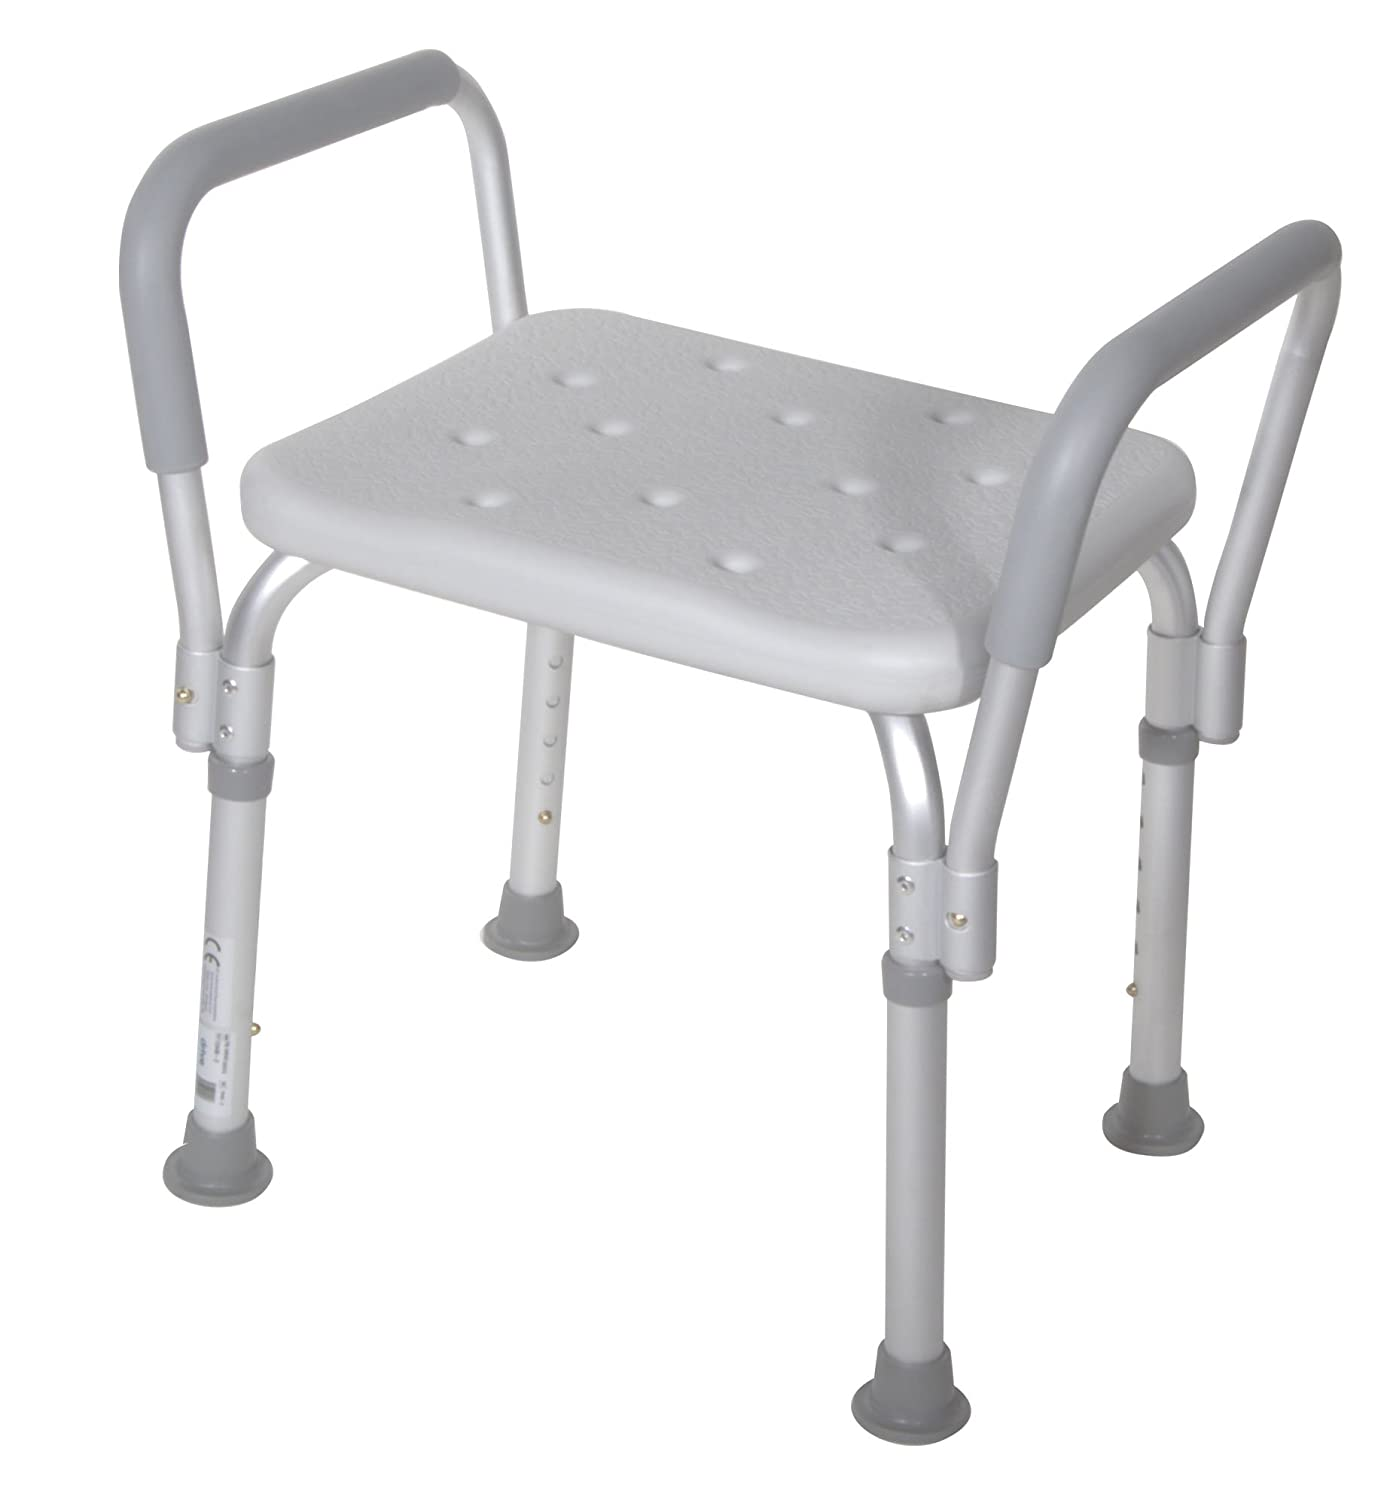 Amazon.com: Drive Medical 12440-1 Bath Bench with Padded Arms, White ...